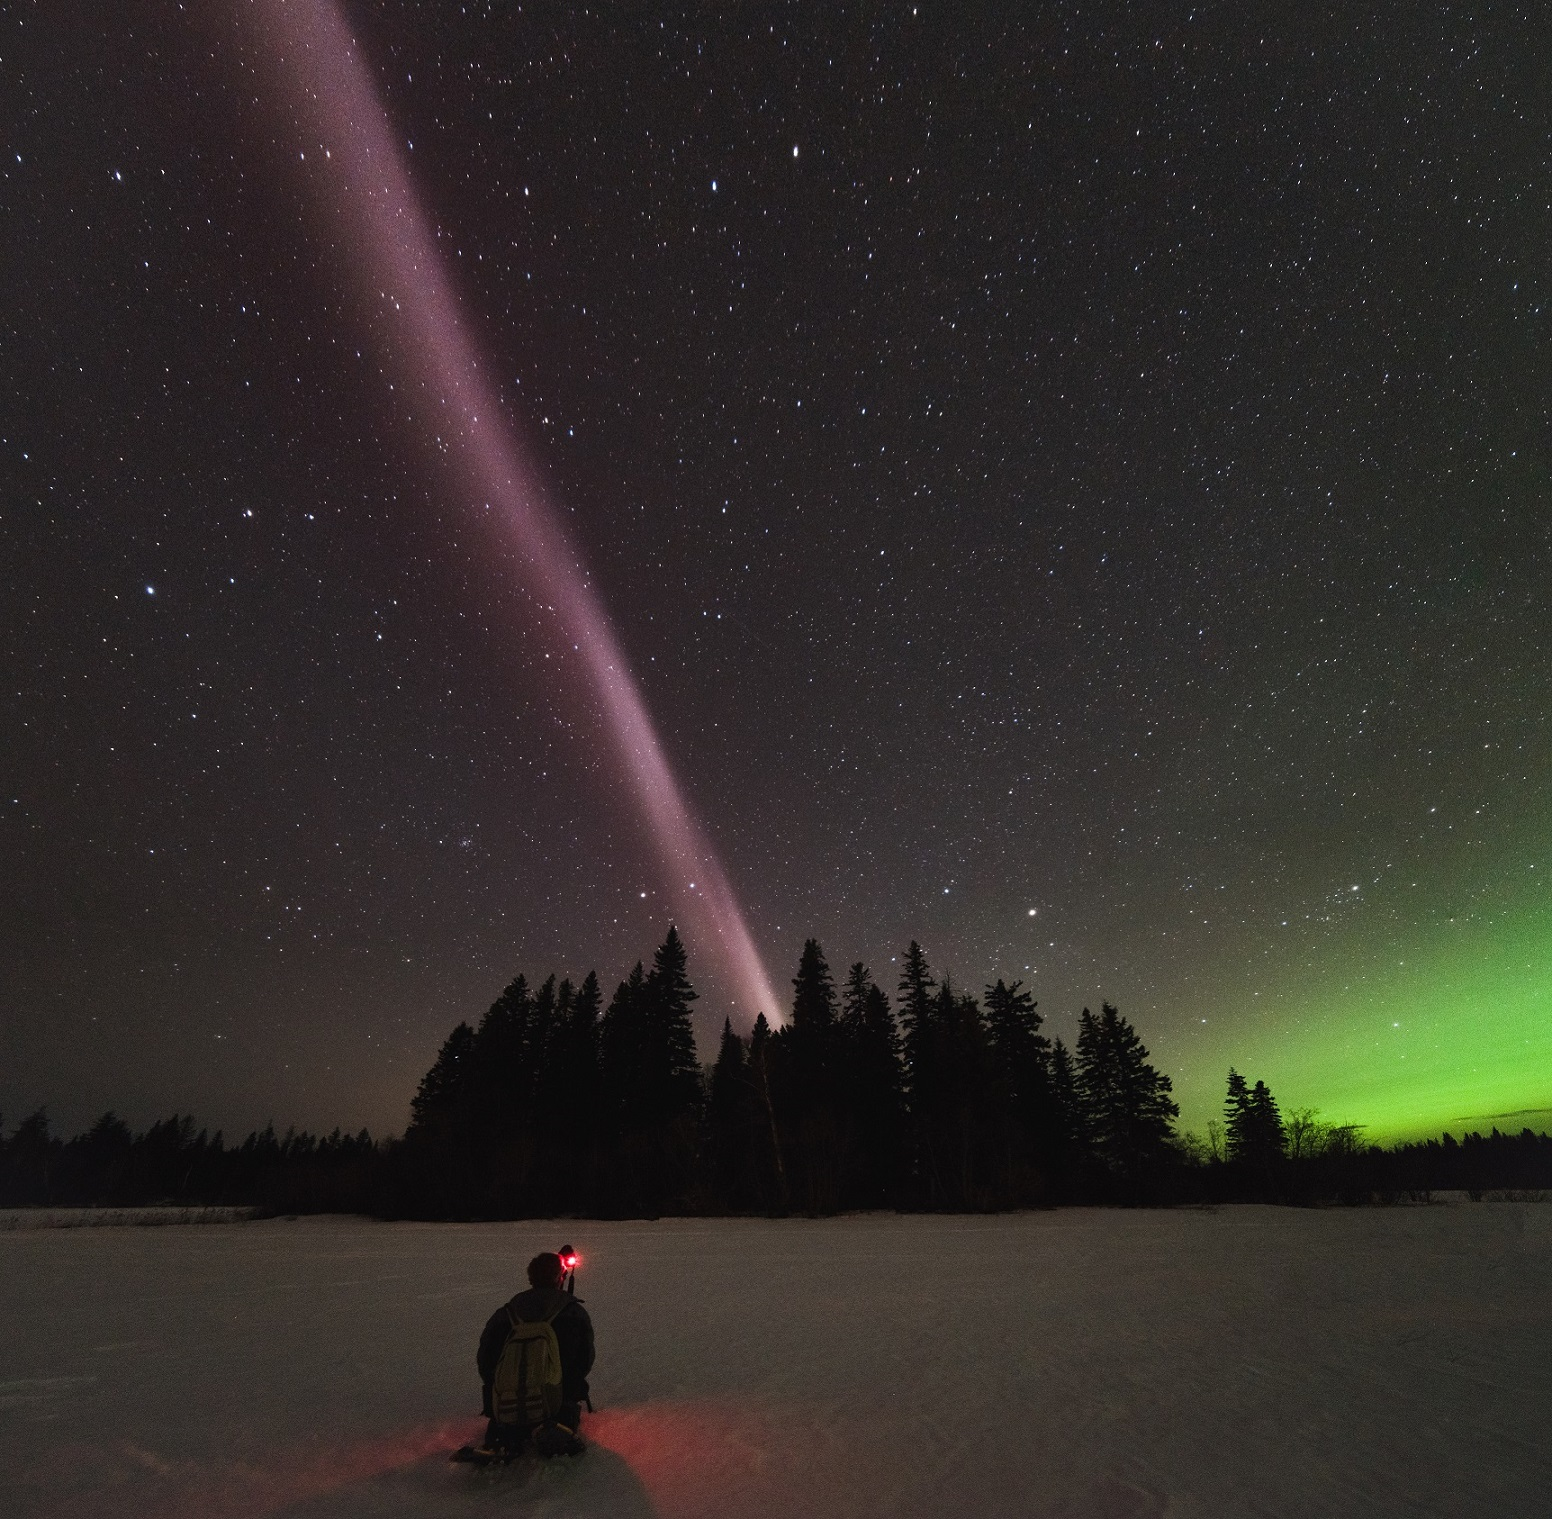 Themis Multipoint Radial Lighting Circuit New Cable Colours Alberta Aurora Chasers Capture Steve The To Science Upper Atmospheric Phenomenon On Evening Of April 10 2018 In Prince George British Columbia